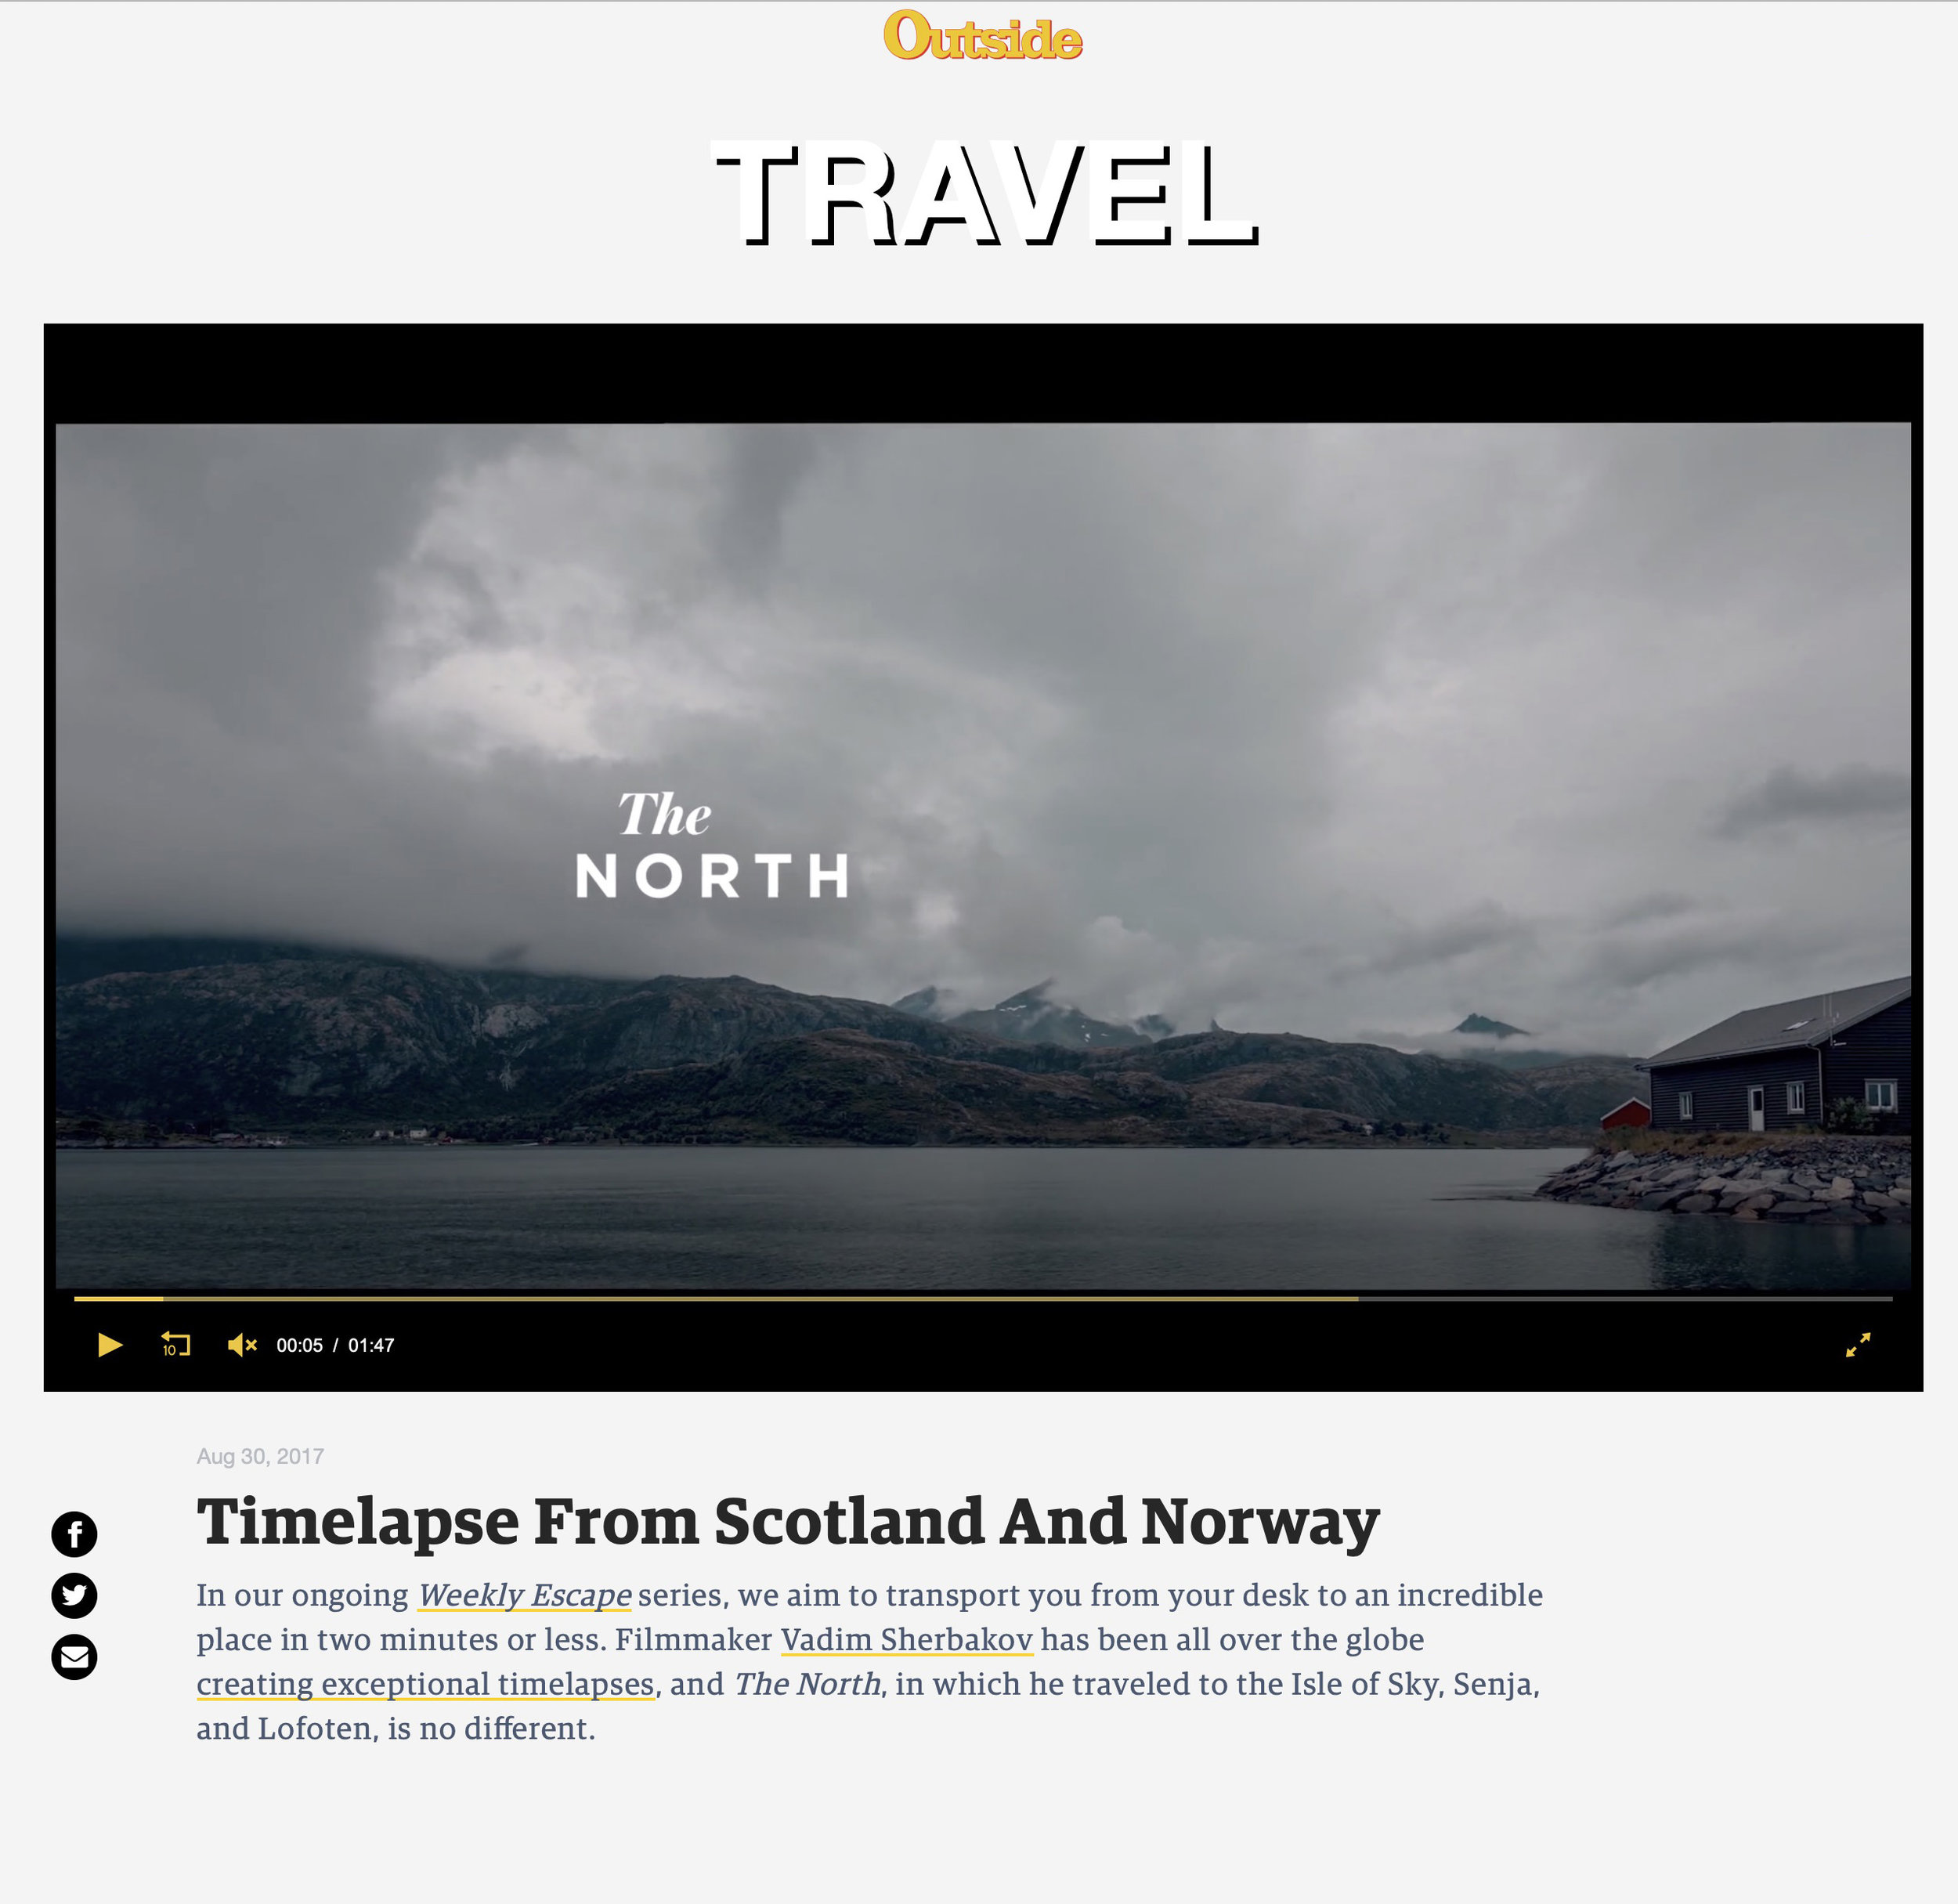 The North short time-lapse film on Outside Magazine site